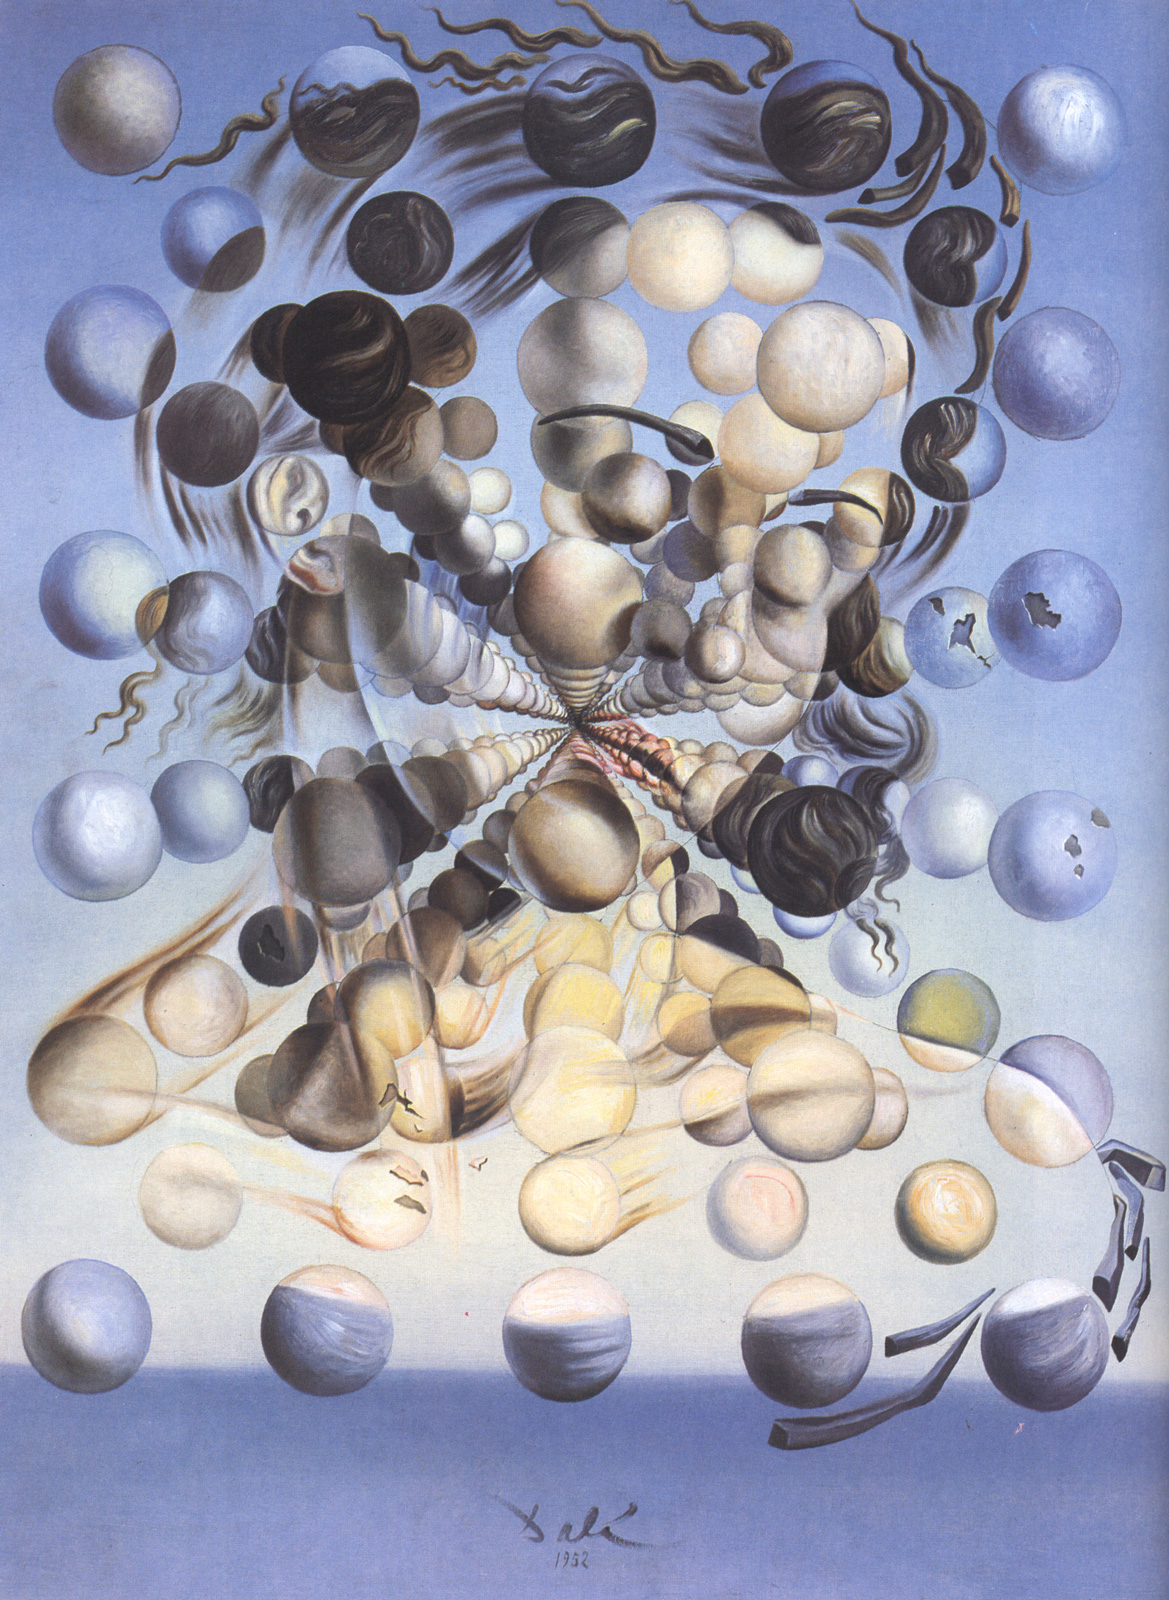 Salvador Dali - Galatea of the Spheres